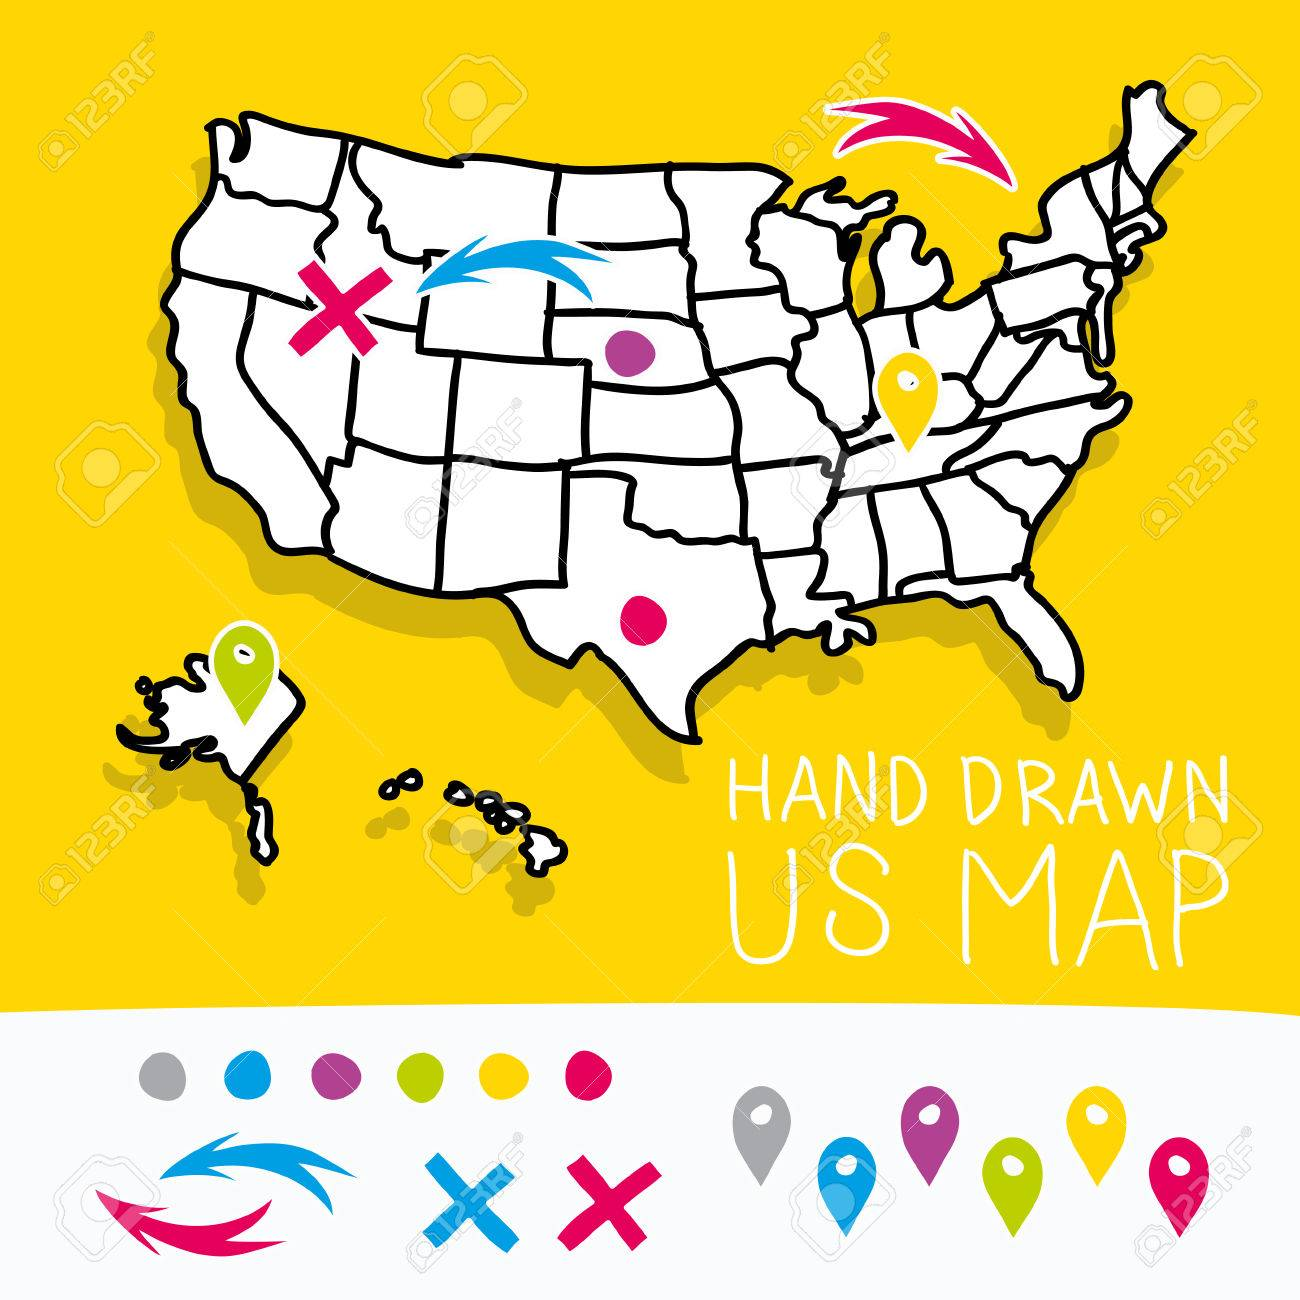 Hand Drawn Us Map.Yellow Hand Drawn Us Map Whith Map Pins Vector Illustration Royalty